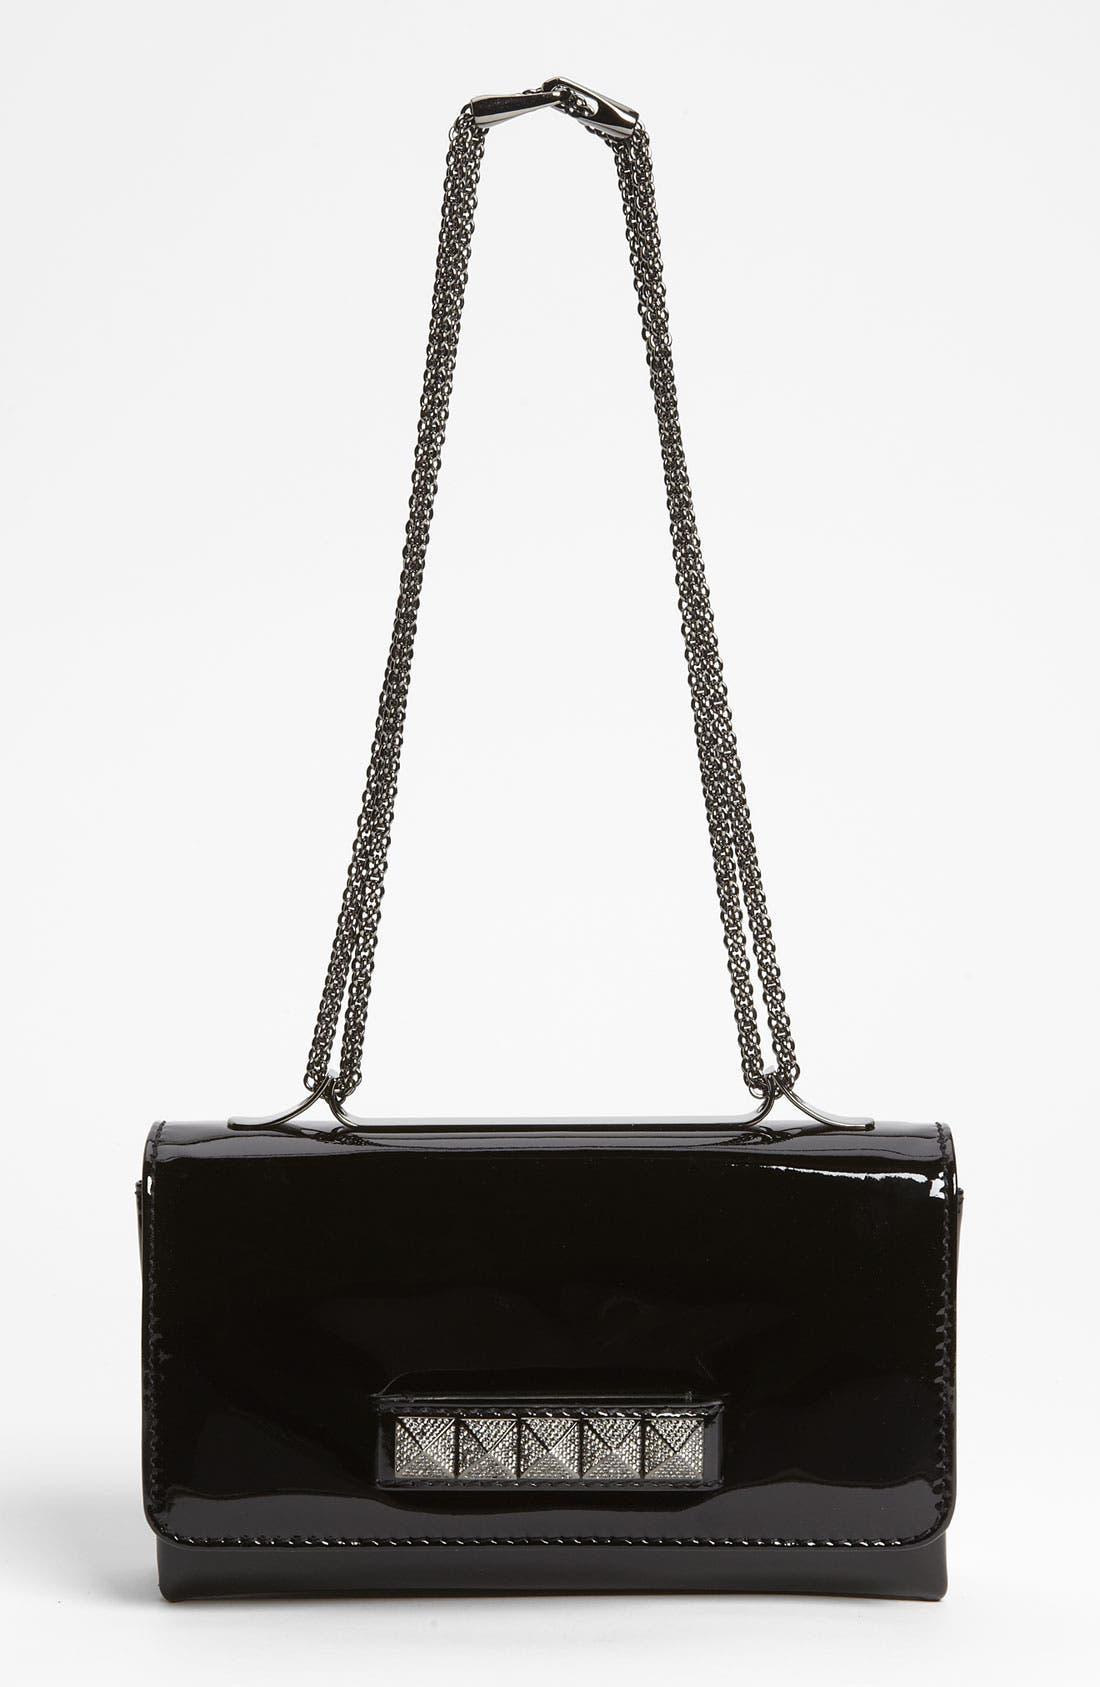 Main Image - Valentino 'Noir - Va Va Voom' Patent Leather Shoulder Bag